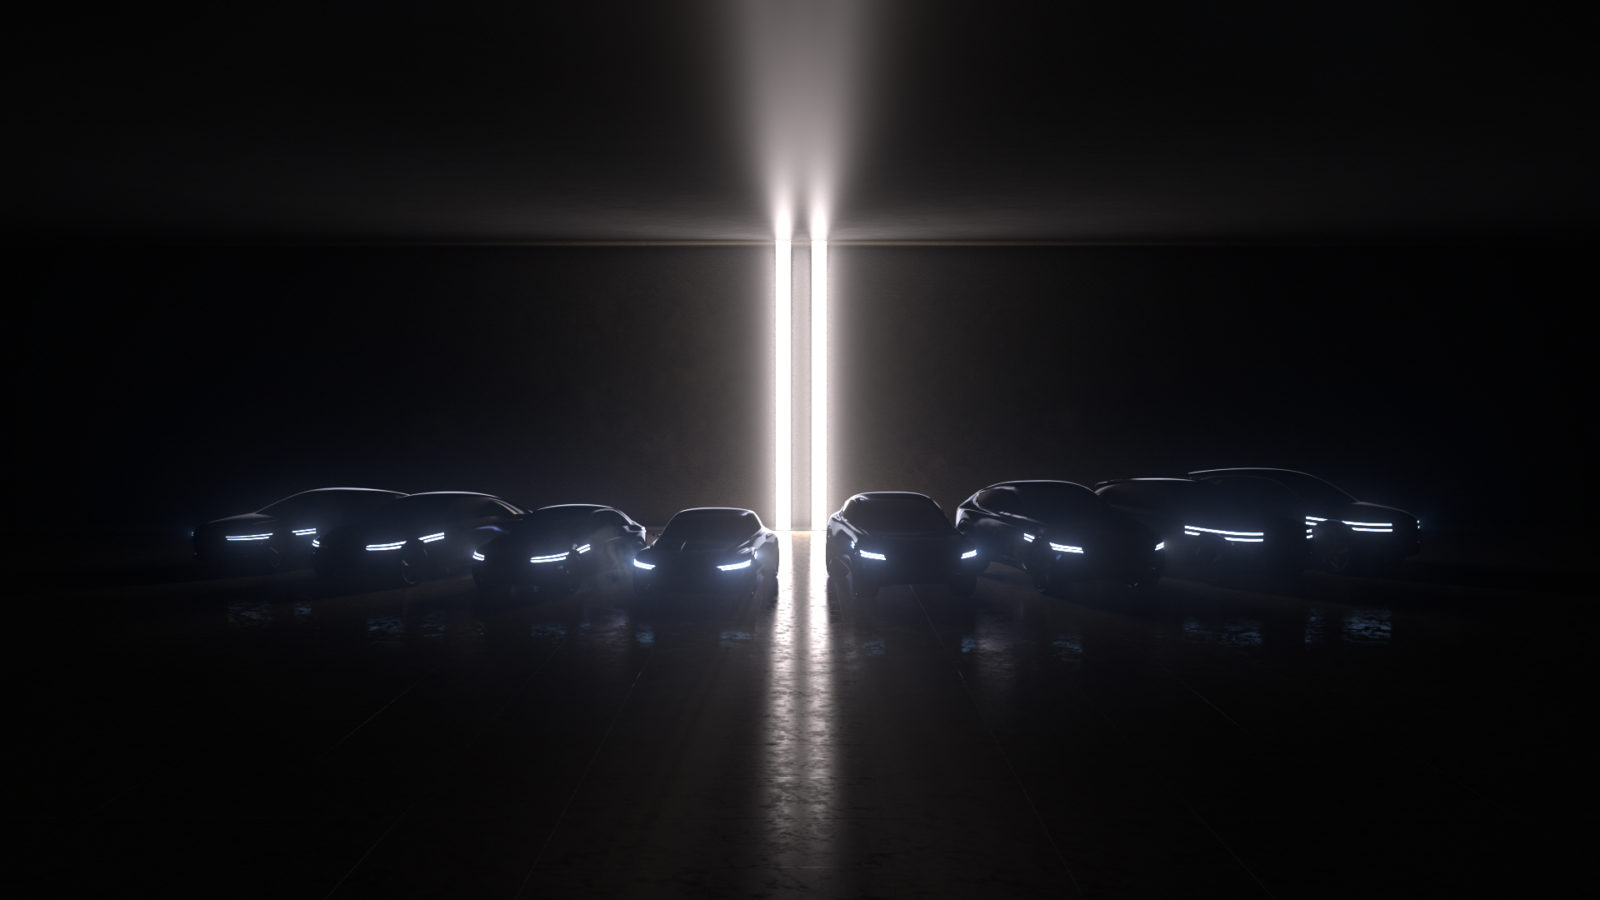 genesis-aims-to-eliminate-tailpipes-by-2030